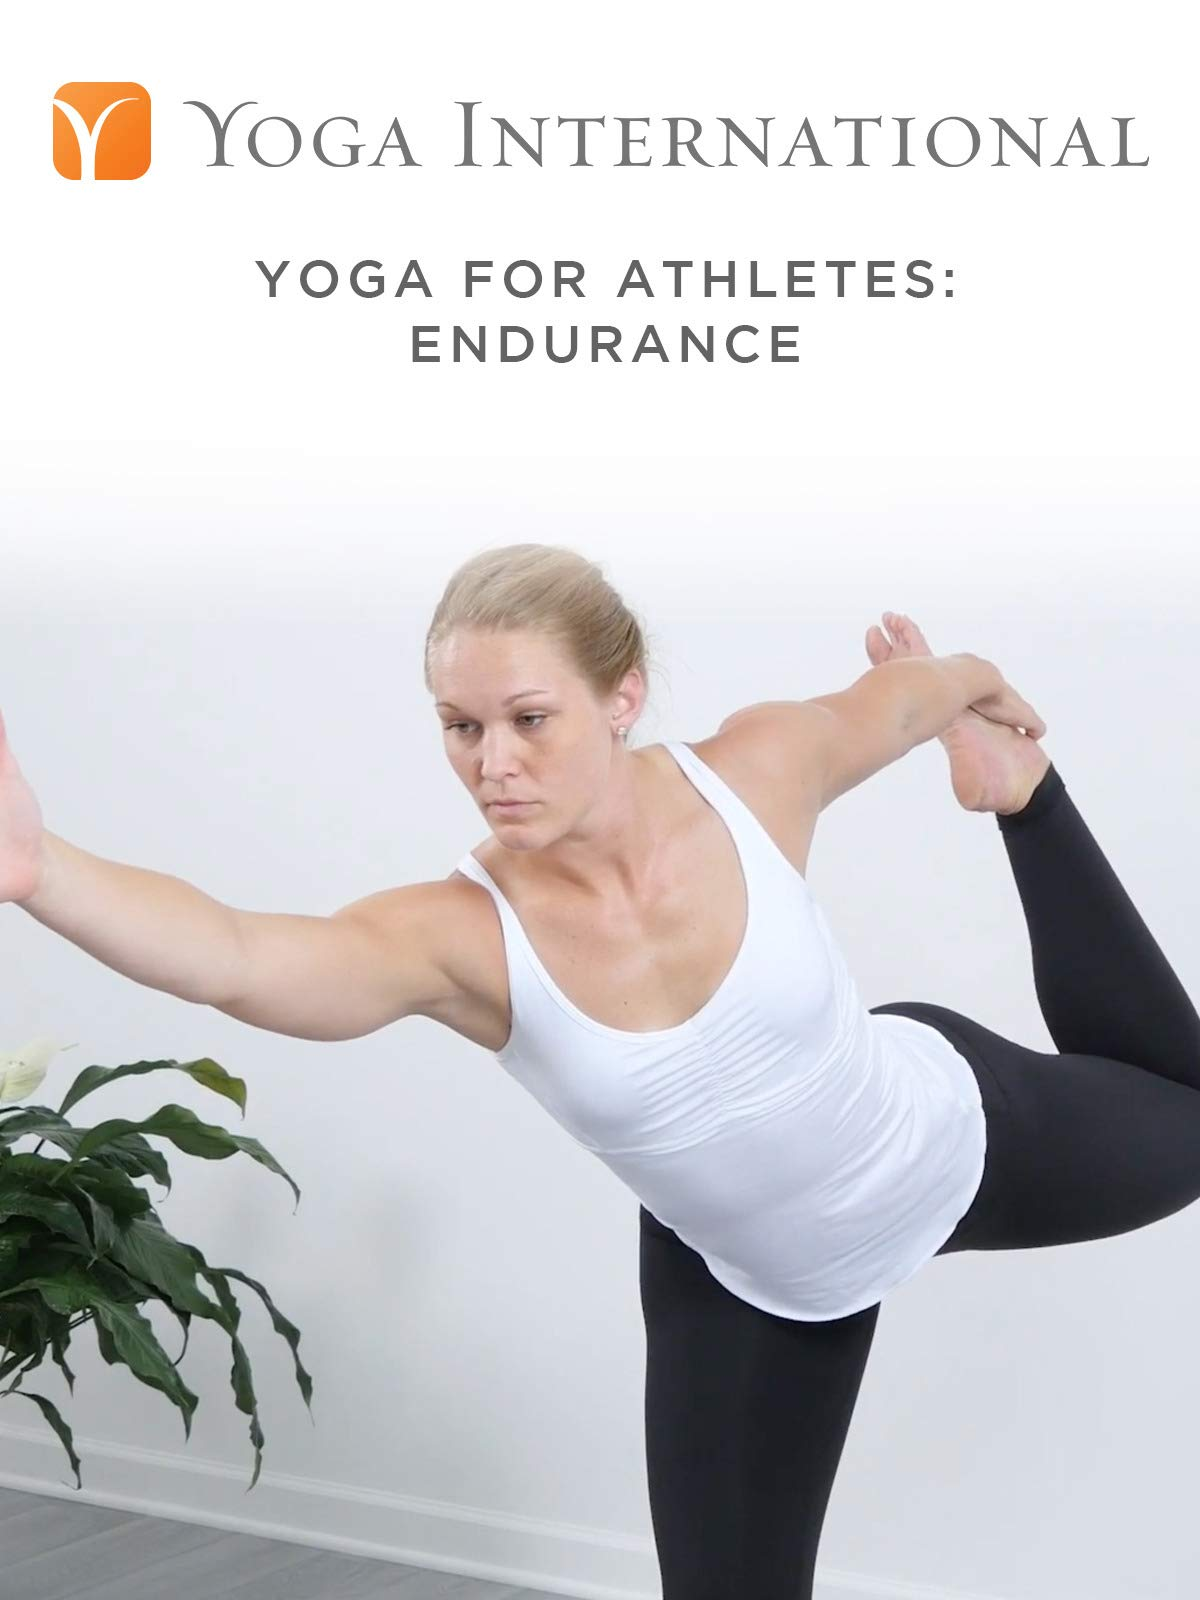 Amazon.com: Watch Yoga for Athletes: Endurance | Prime Video